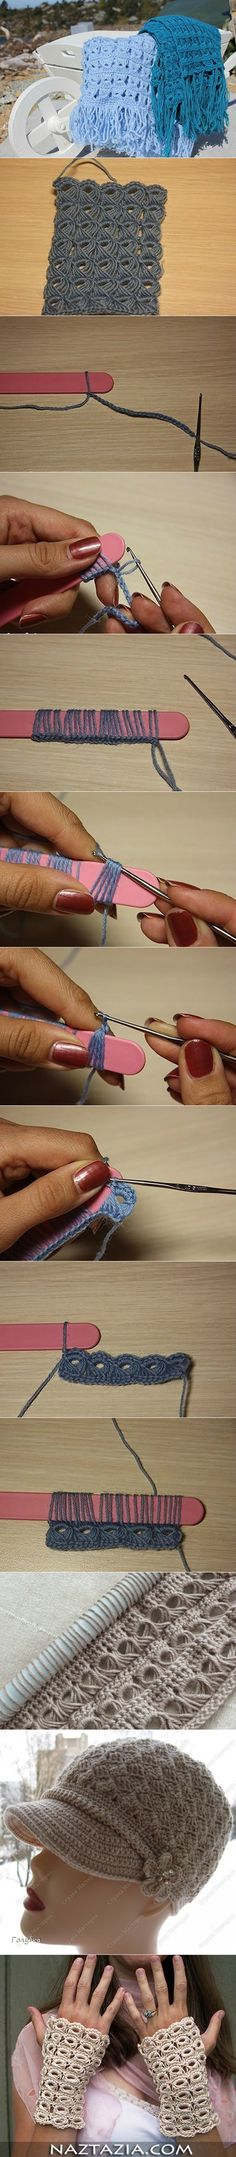 DIY Basic Crochet Pattern with Popsicle Stick | www.FabArtDIY.com LIKE Us on Facebook ==> https://www.facebook.com/FabArtDIY